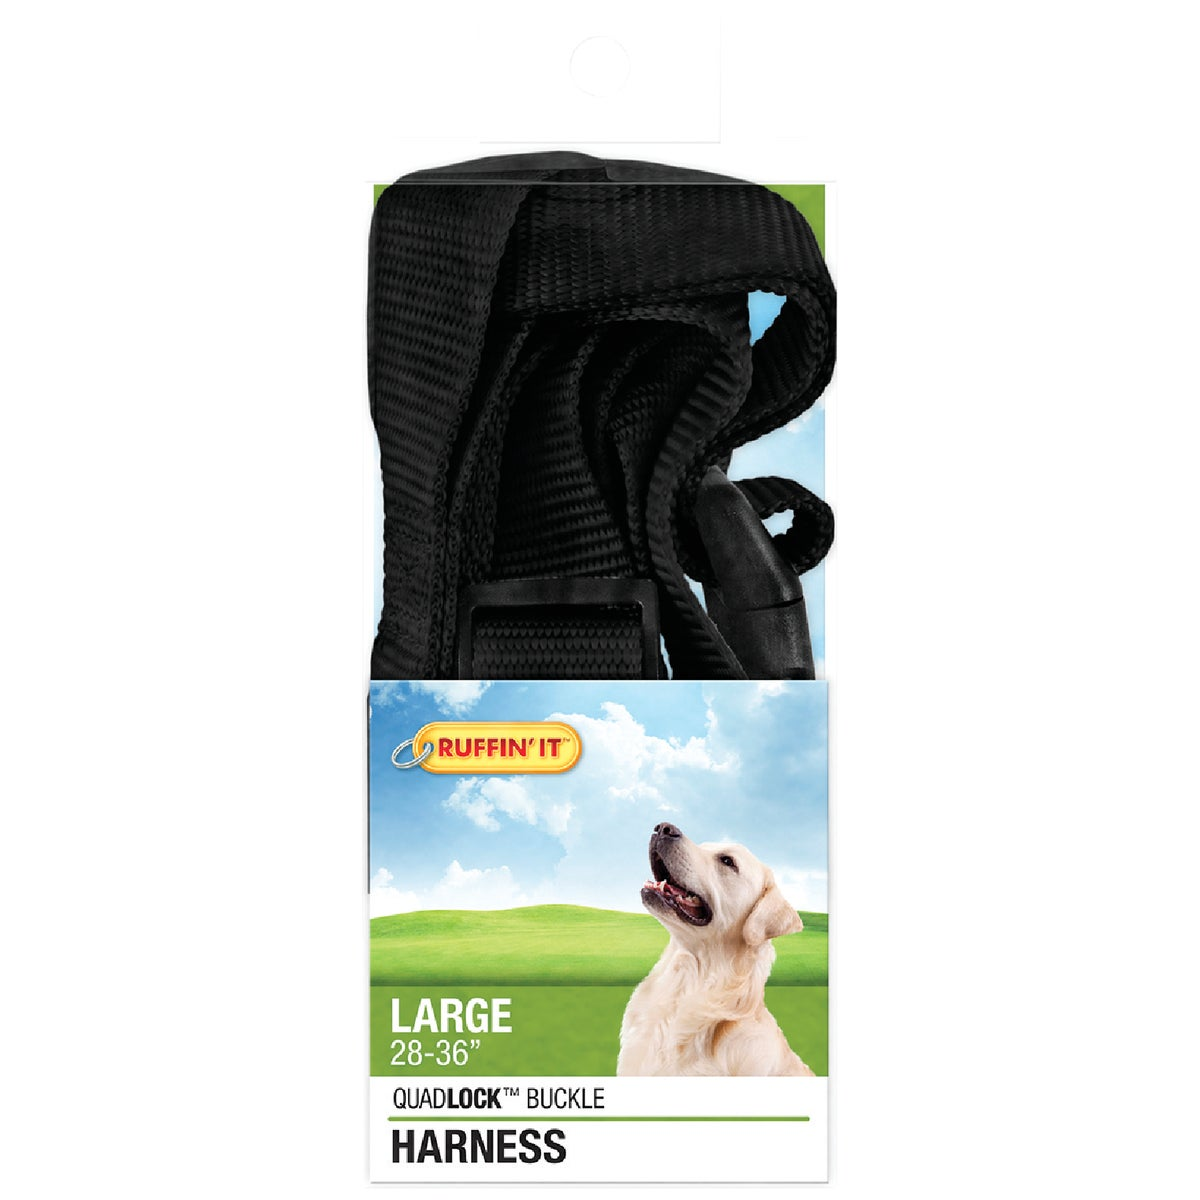 1X28-36 NYLON HARNESS - 41476 by Westminster Pet